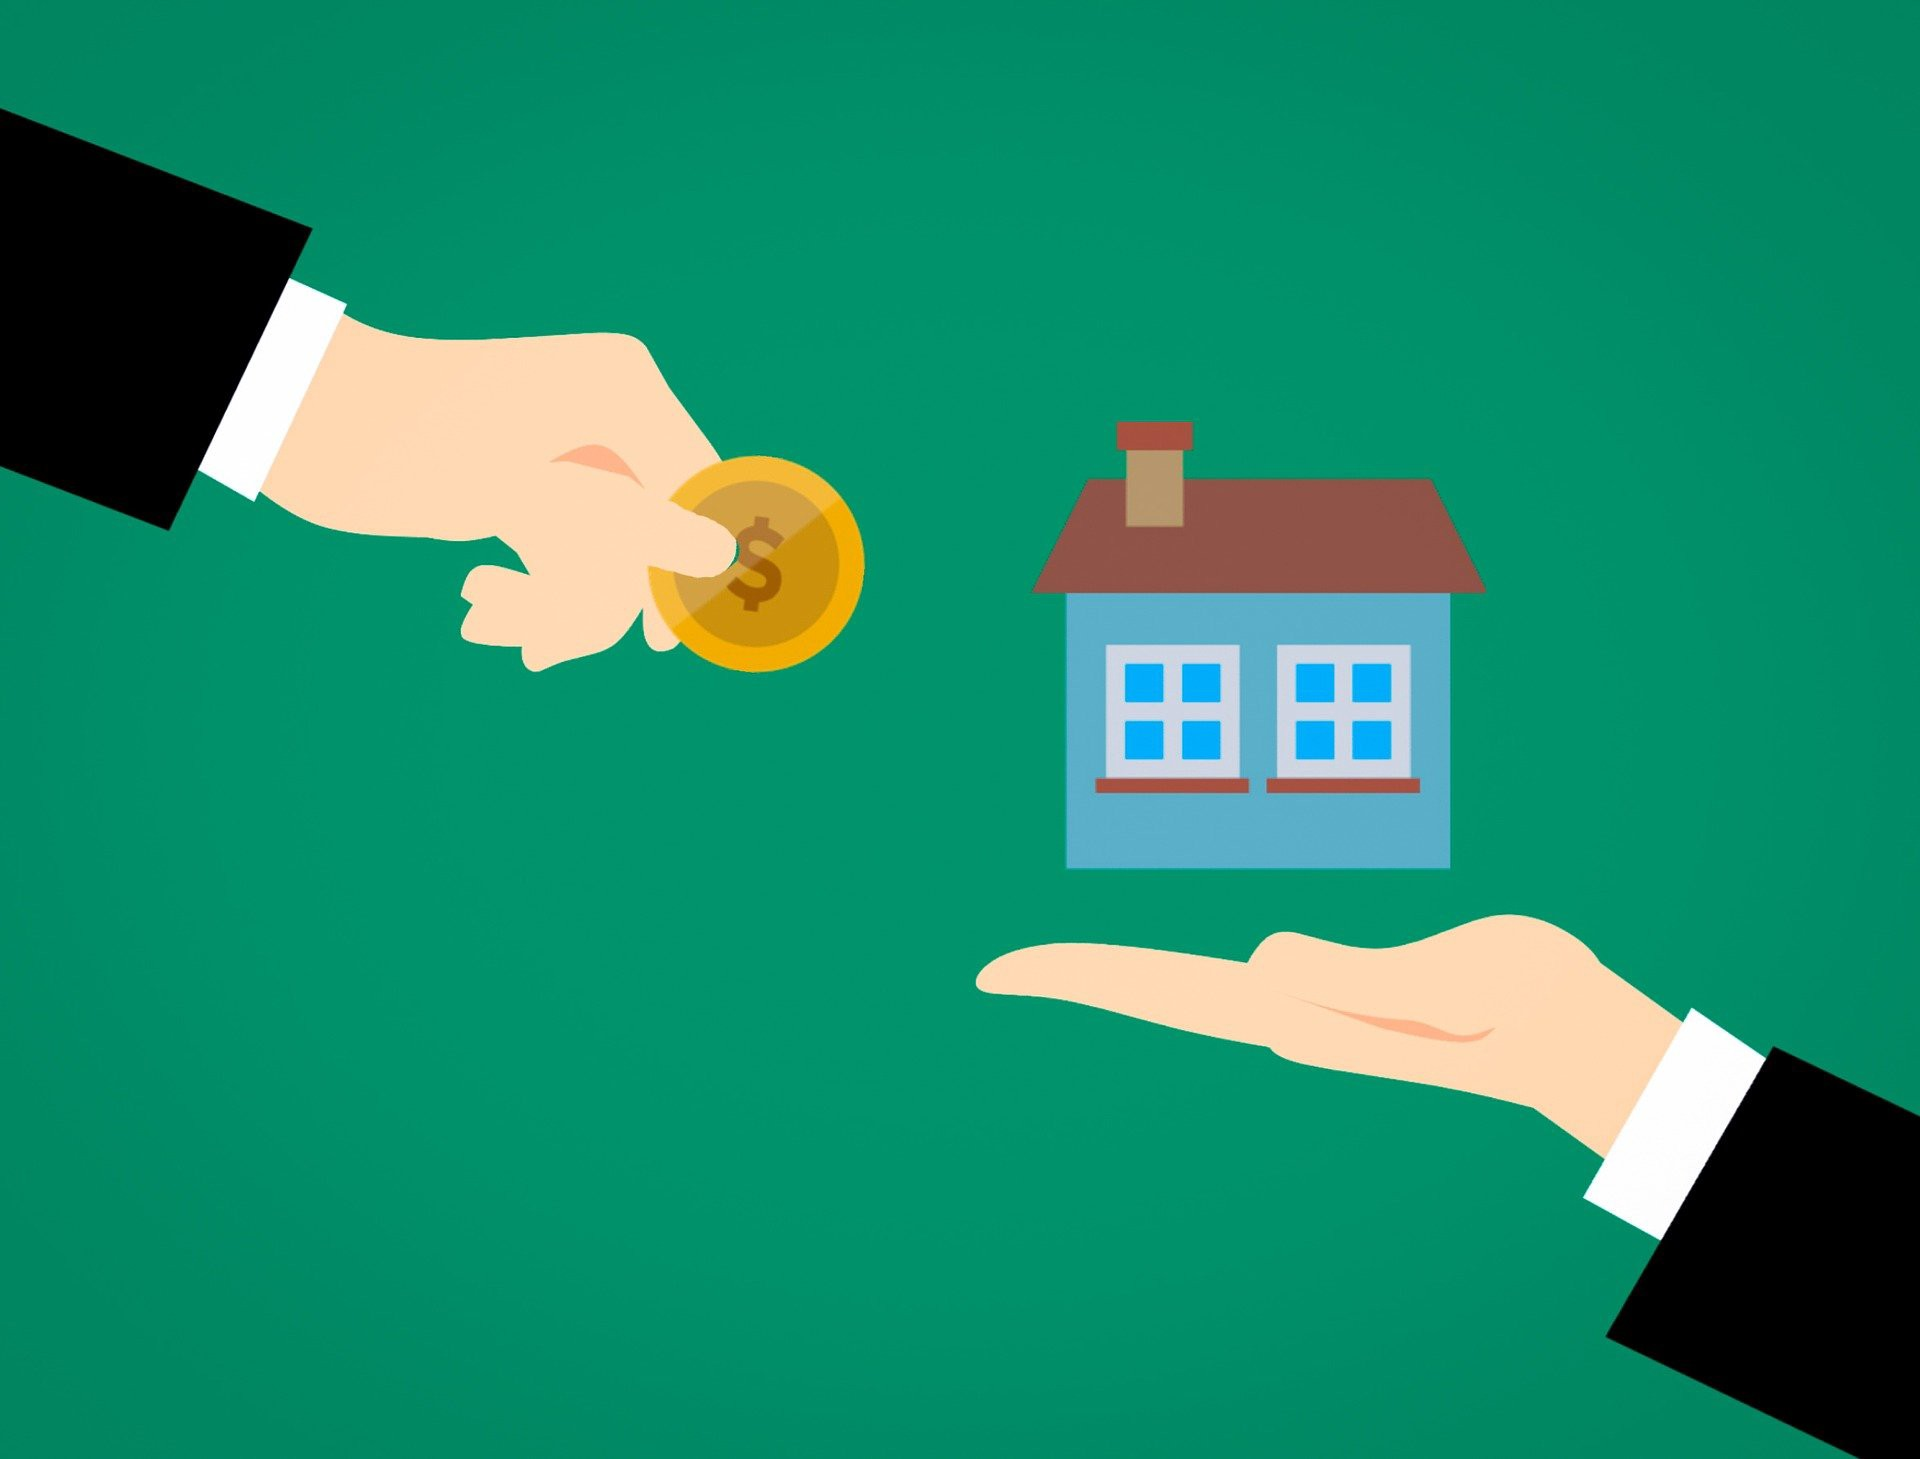 Cartoon with one hand holding a small house, trading it with another hand that is holding money.